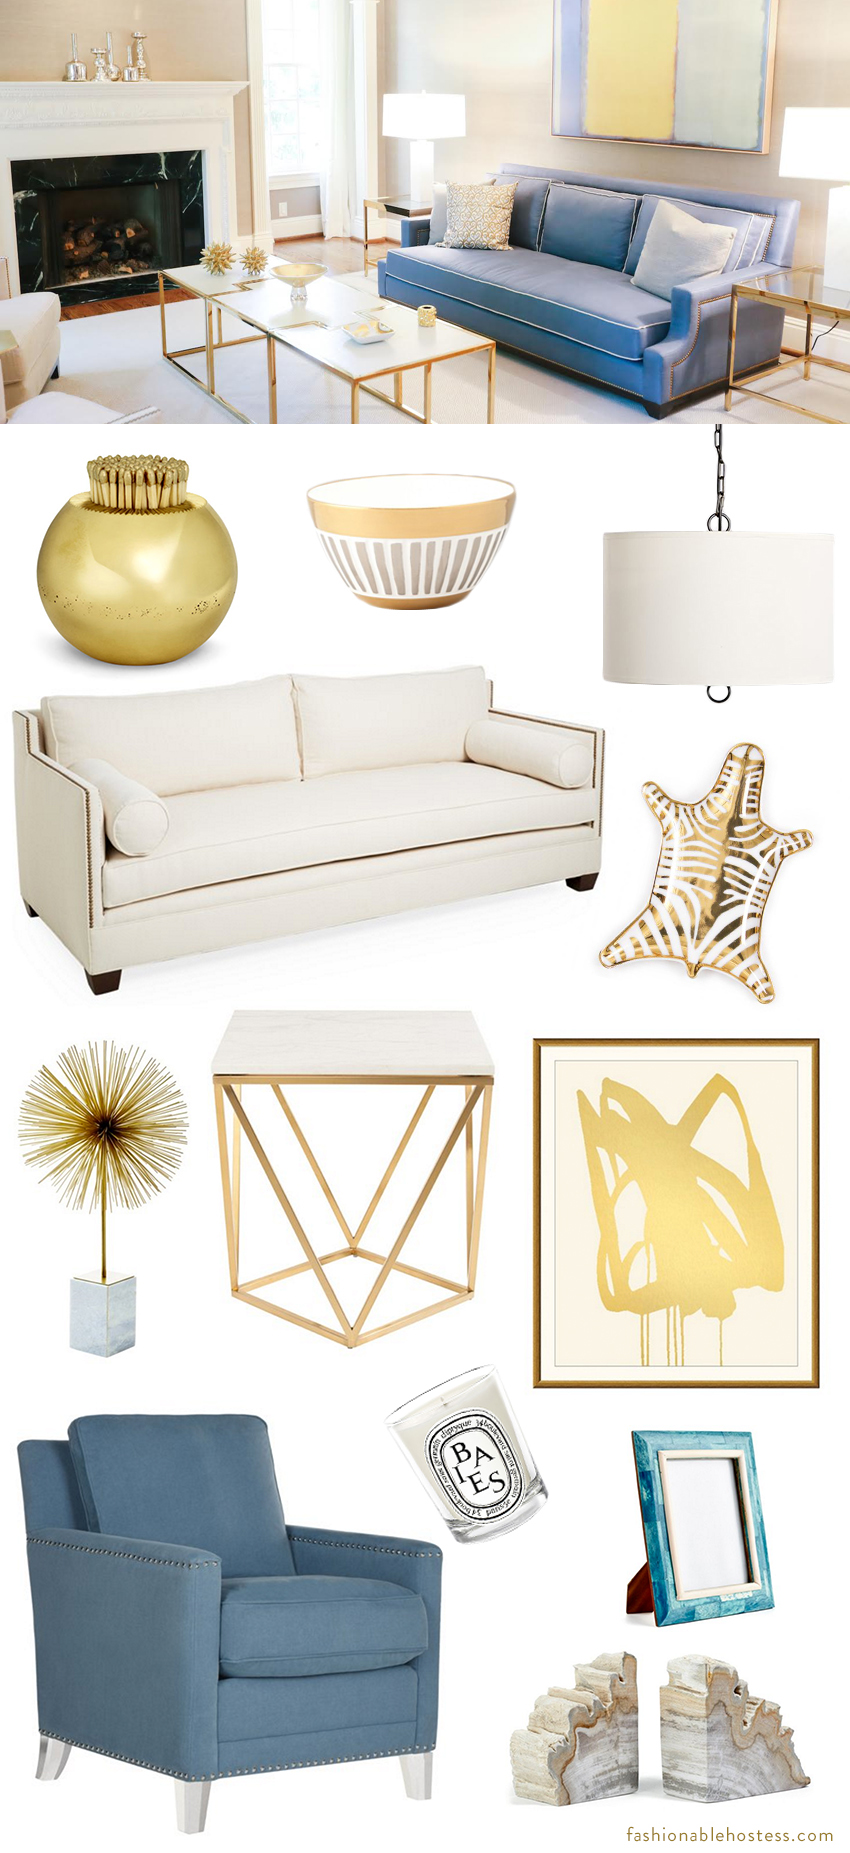 Formal Living Room Get The Look Fashionable Hostess